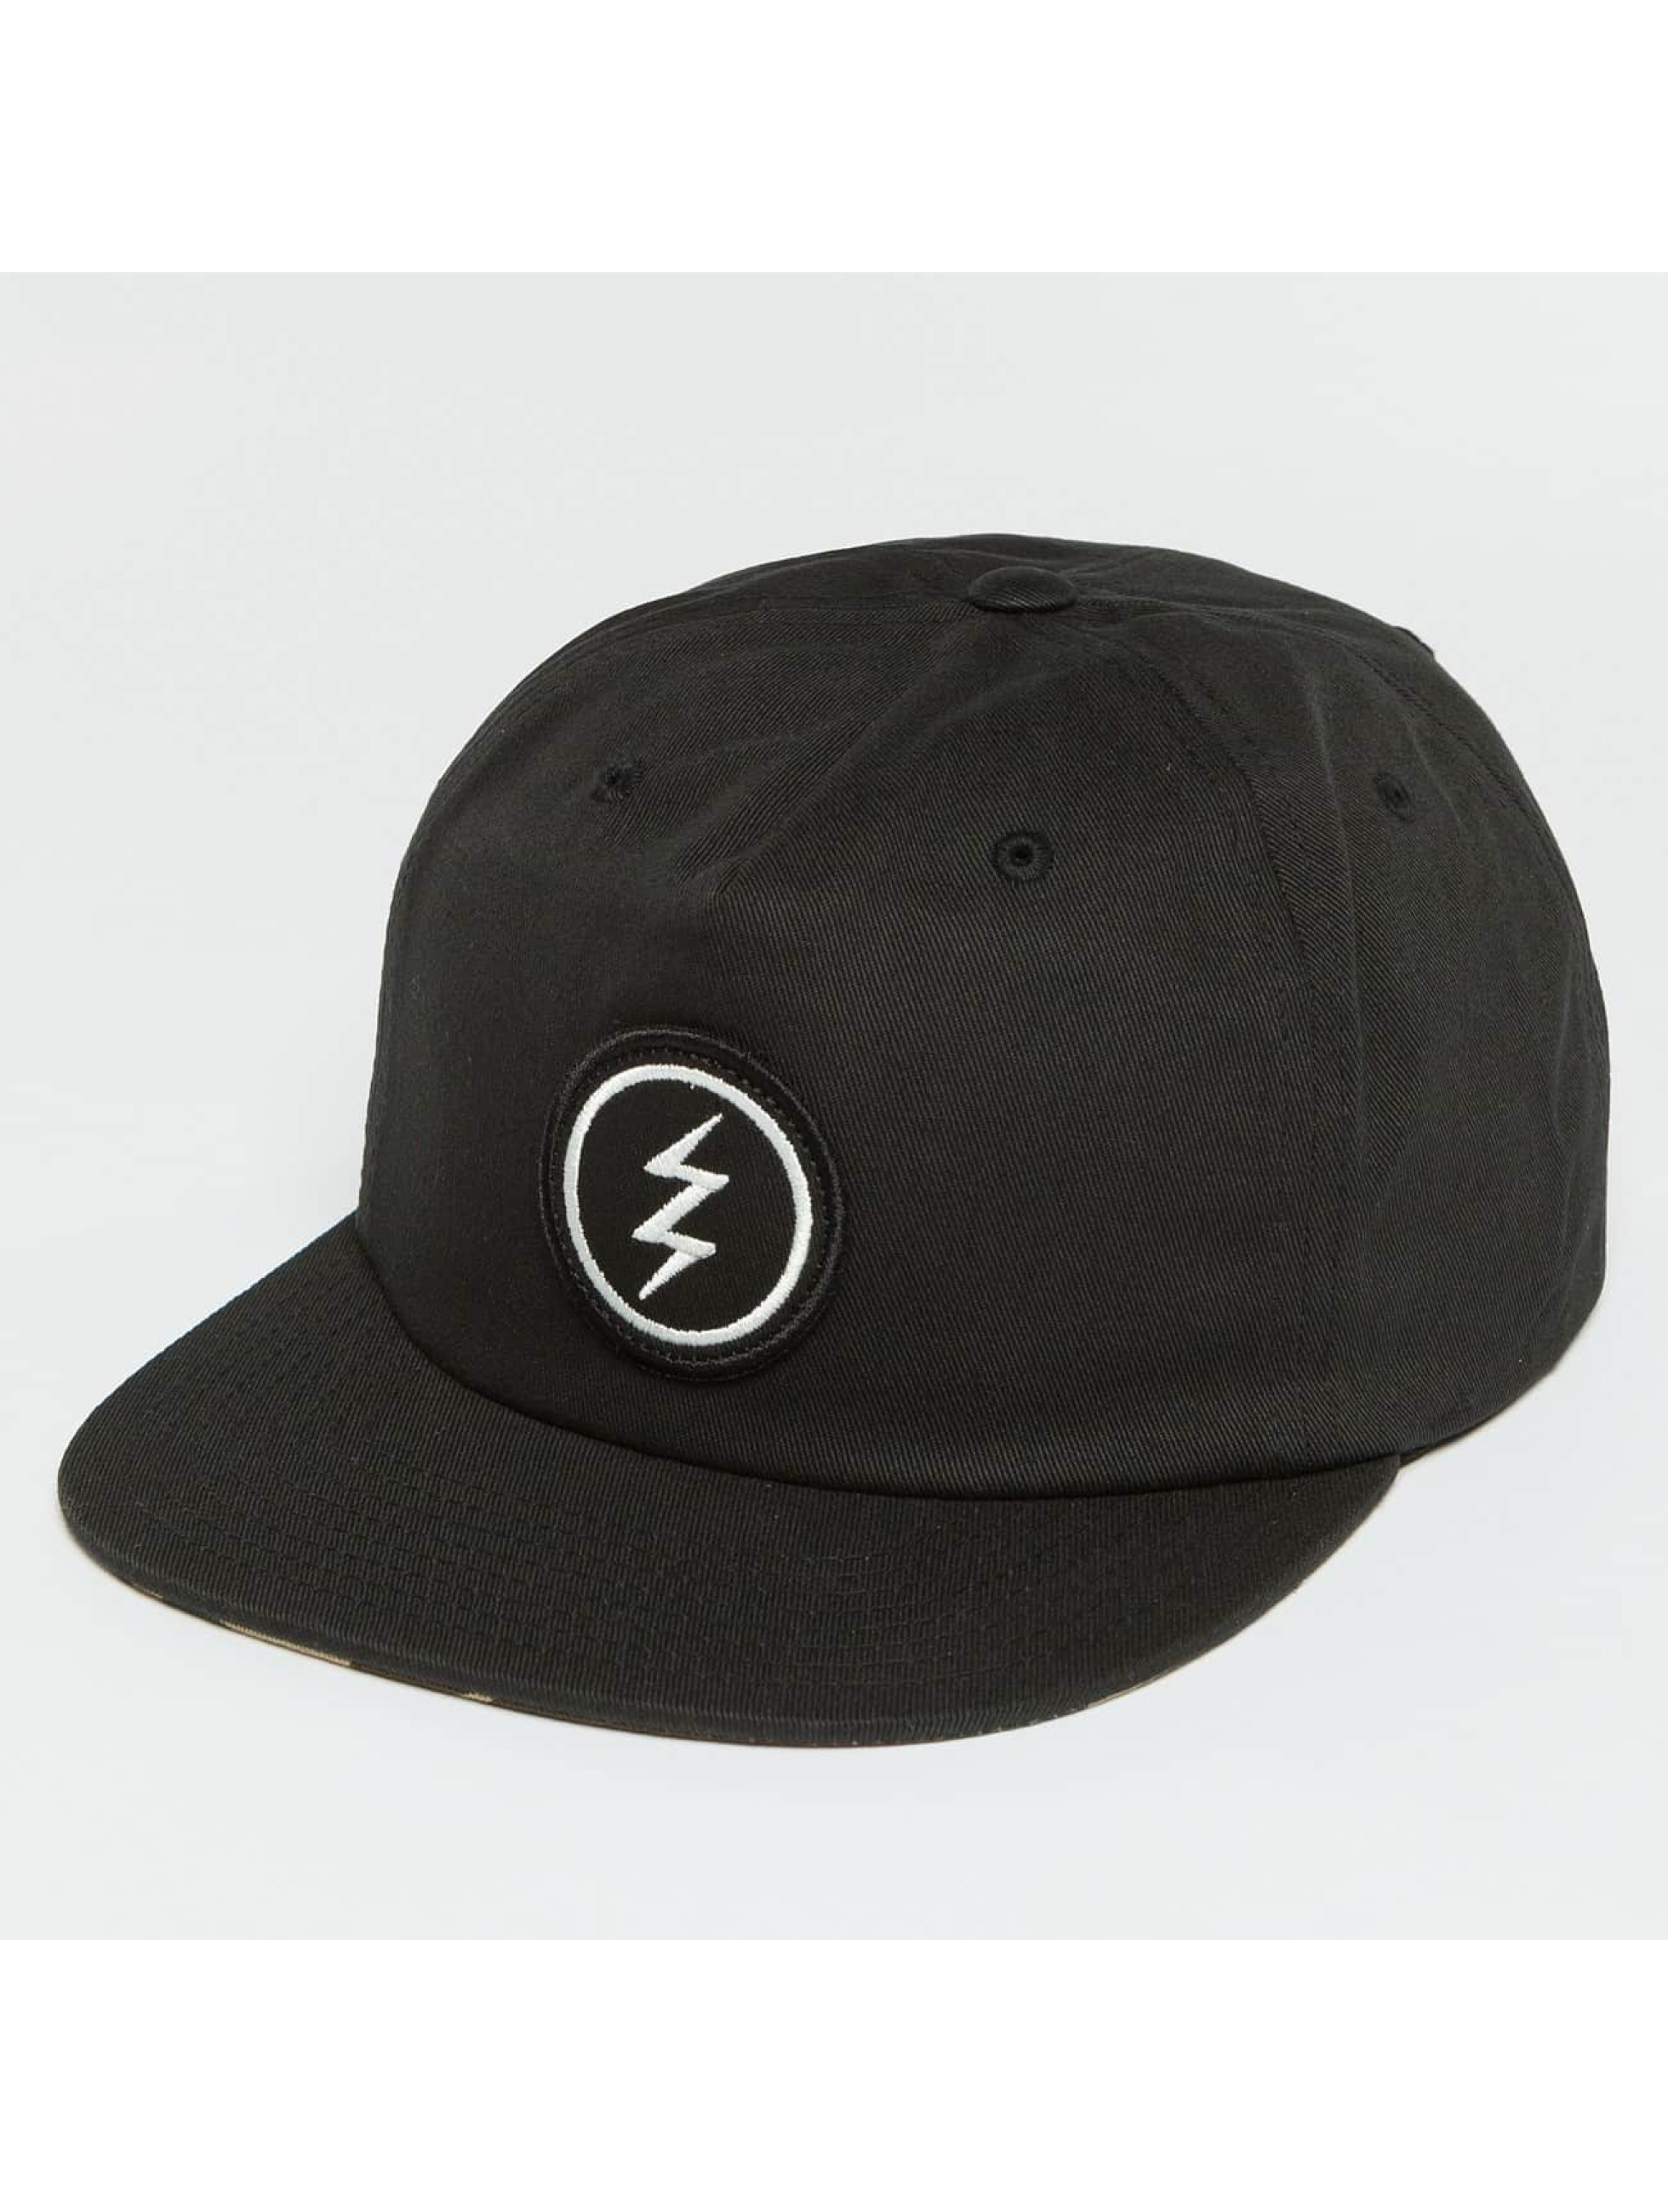 Electric Casquette Snapback & Strapback NEW UNIFORM noir